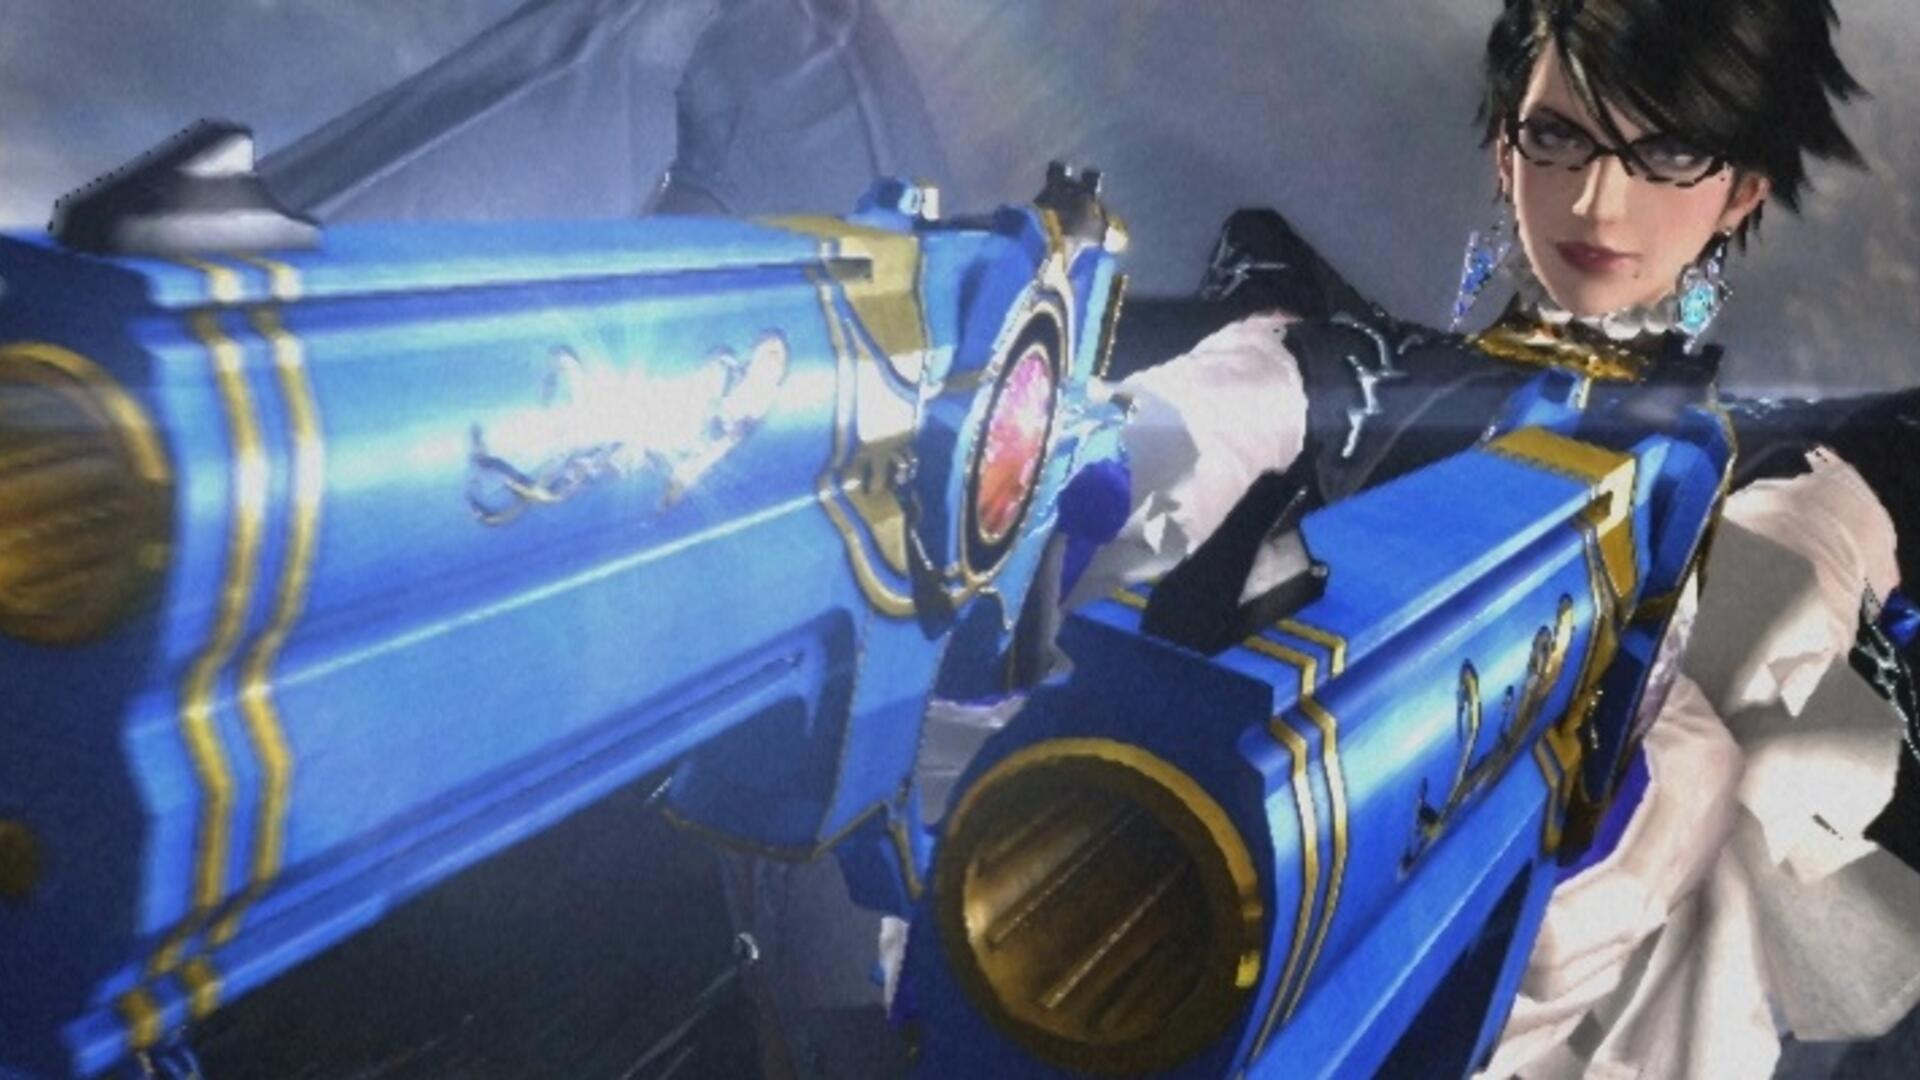 USstreamer Tuesday: Mike Gets His Groove Back with Bayonetta 2 at 2pm PT/5pm ET